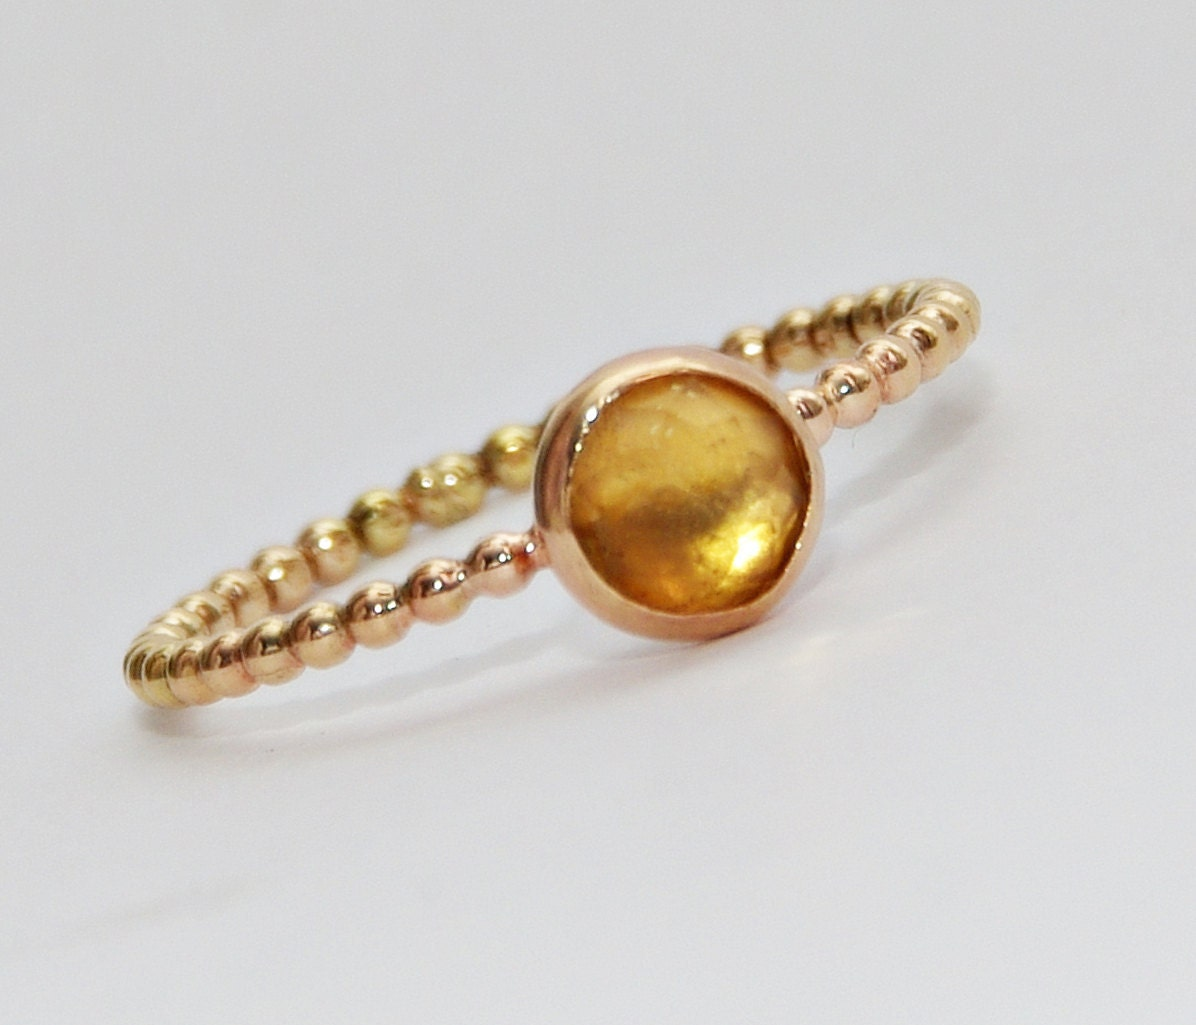 Gemstone Ring Gold Citrine Ring Citrine Gemstone By